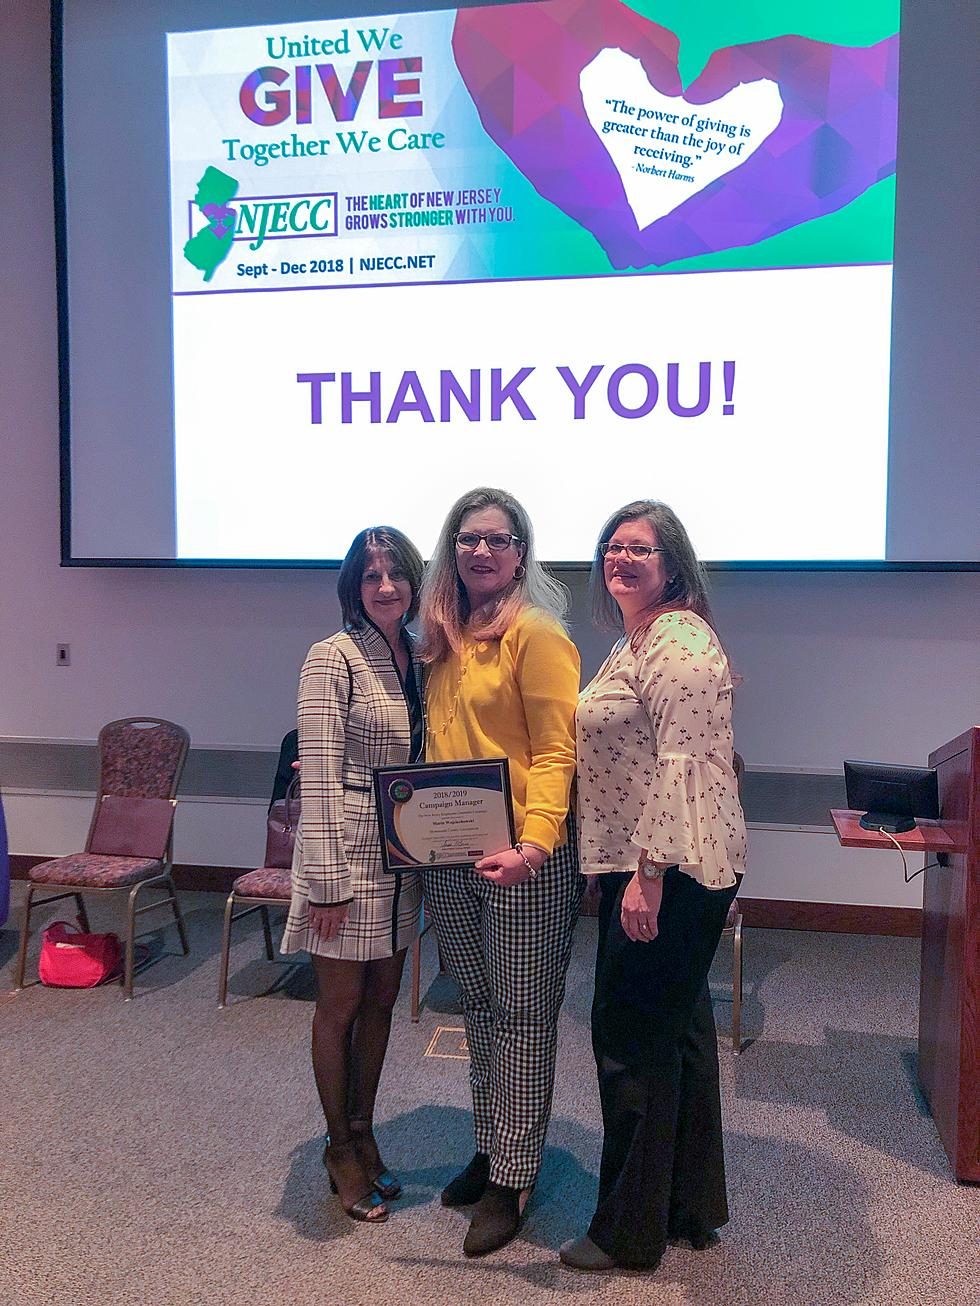 Swell Monmouth County Recognized For Charitable Efforts Interior Design Ideas Tzicisoteloinfo